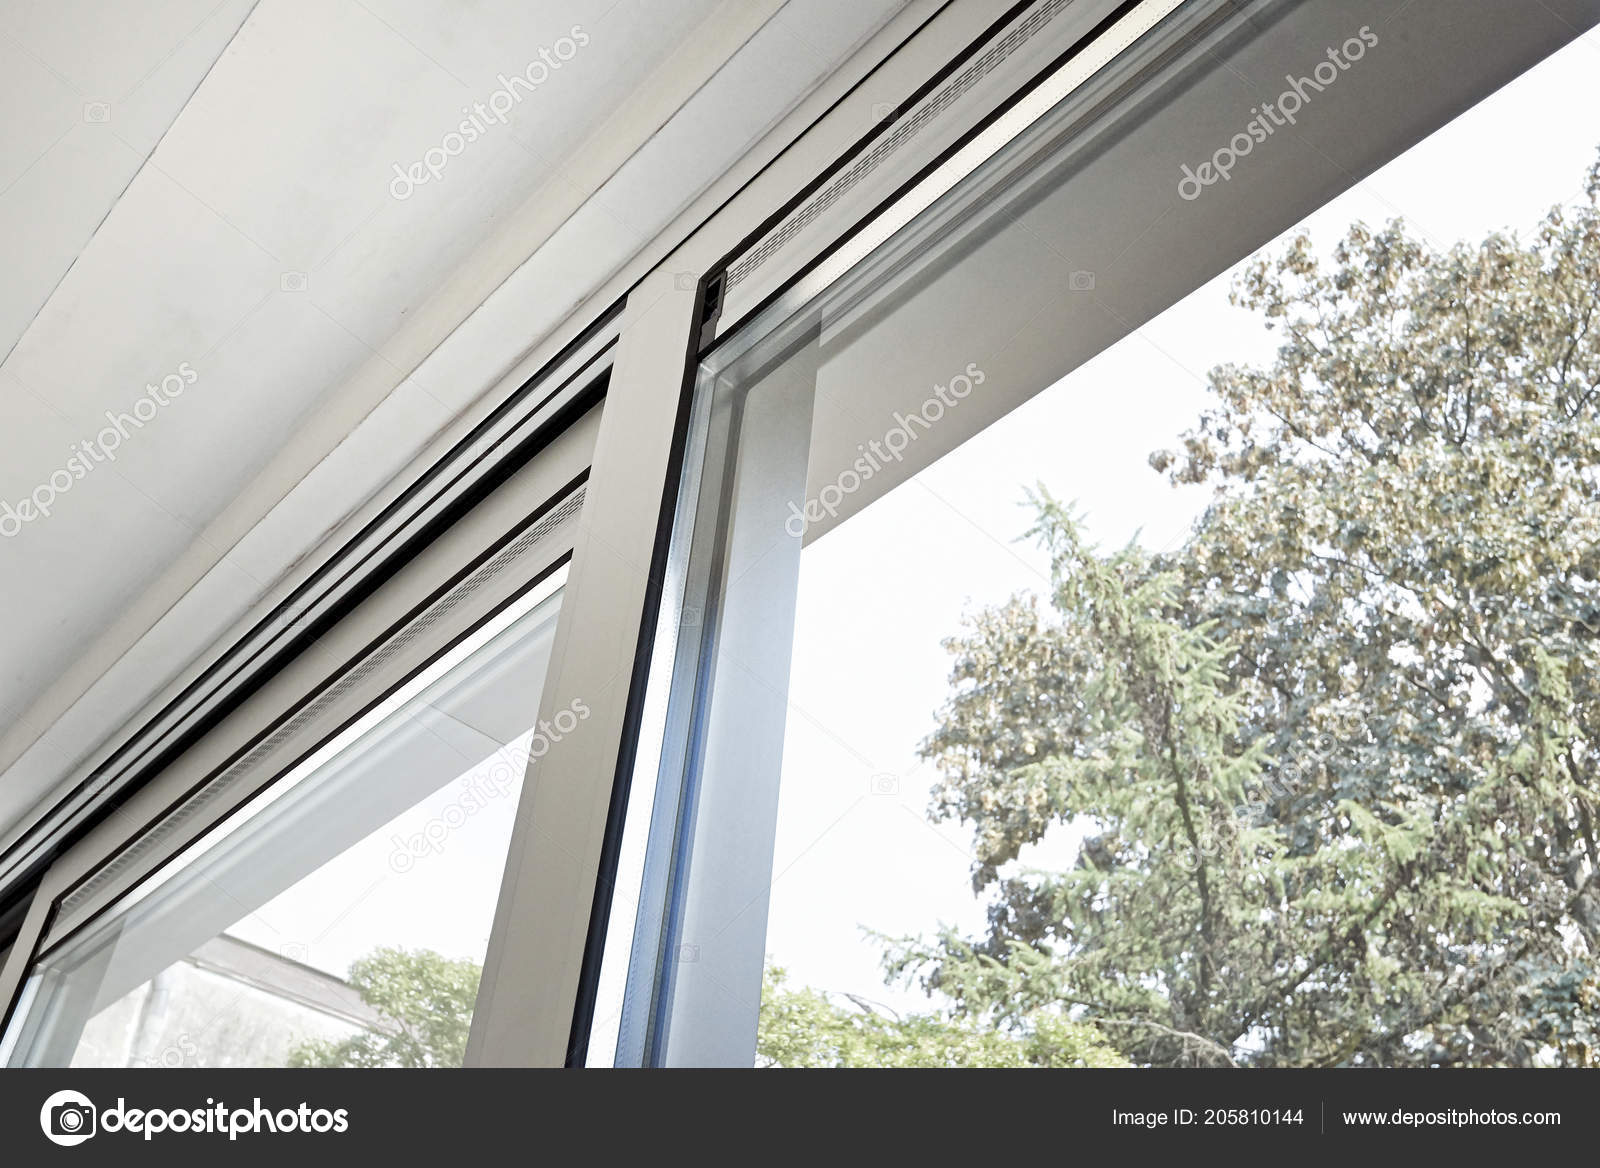 Sliding Glass Door His Ventilation System Painting Wall Stock